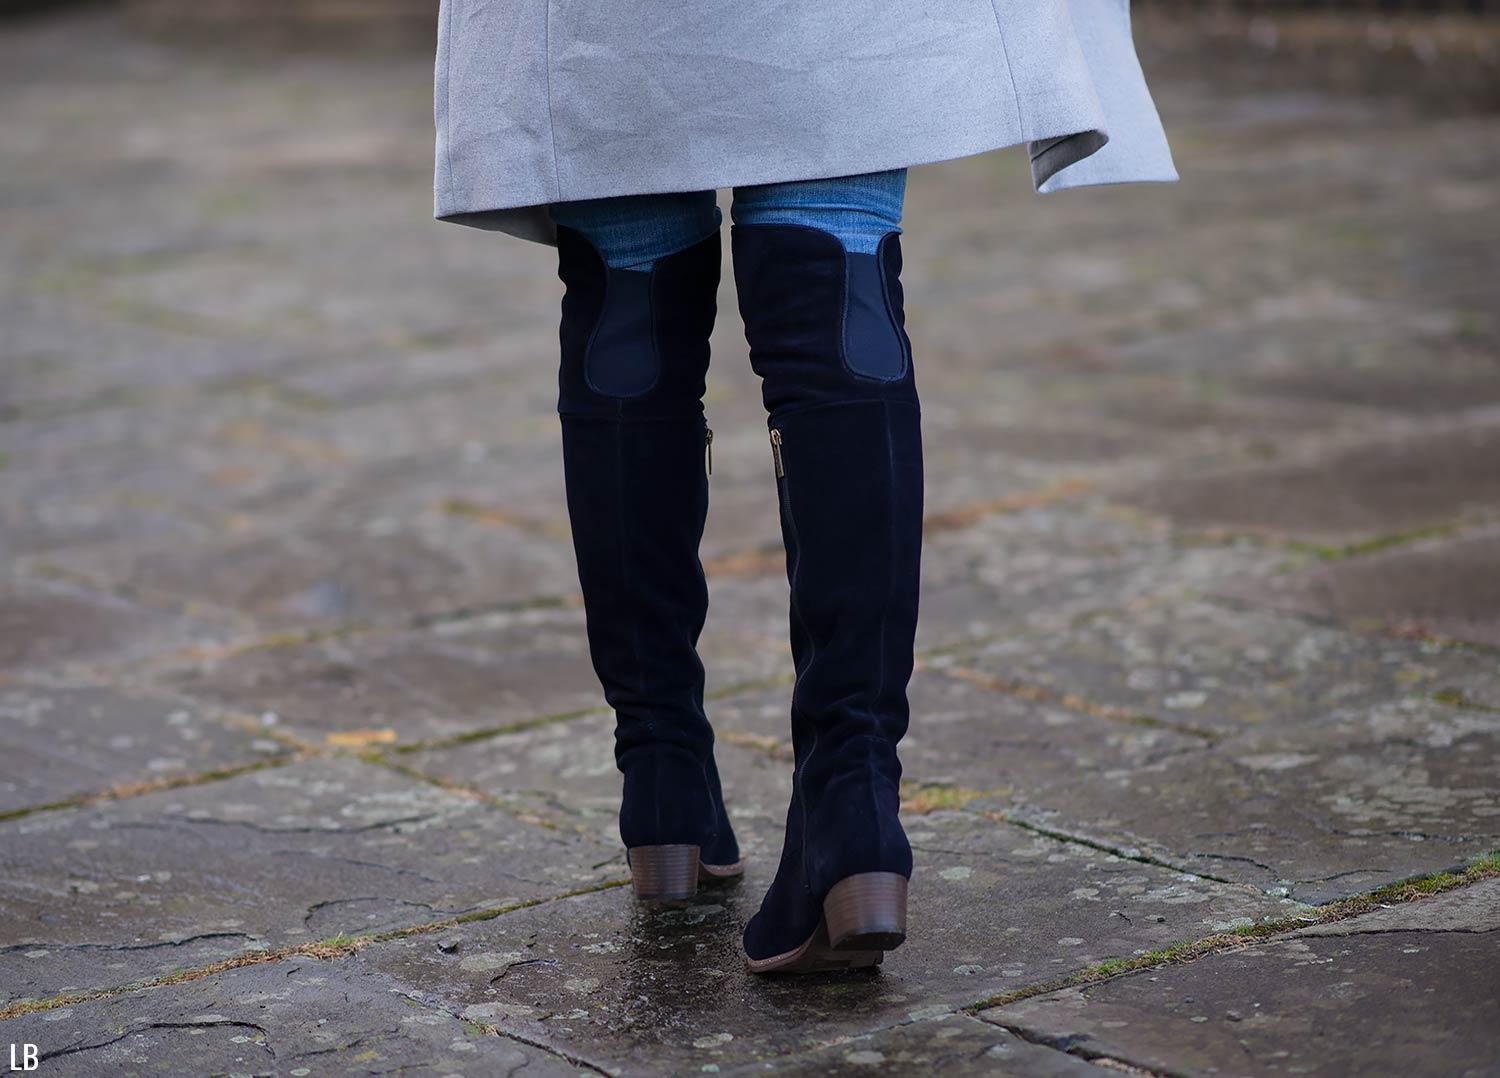 ted-and-muffy-navy-blue-suede-knee-boots